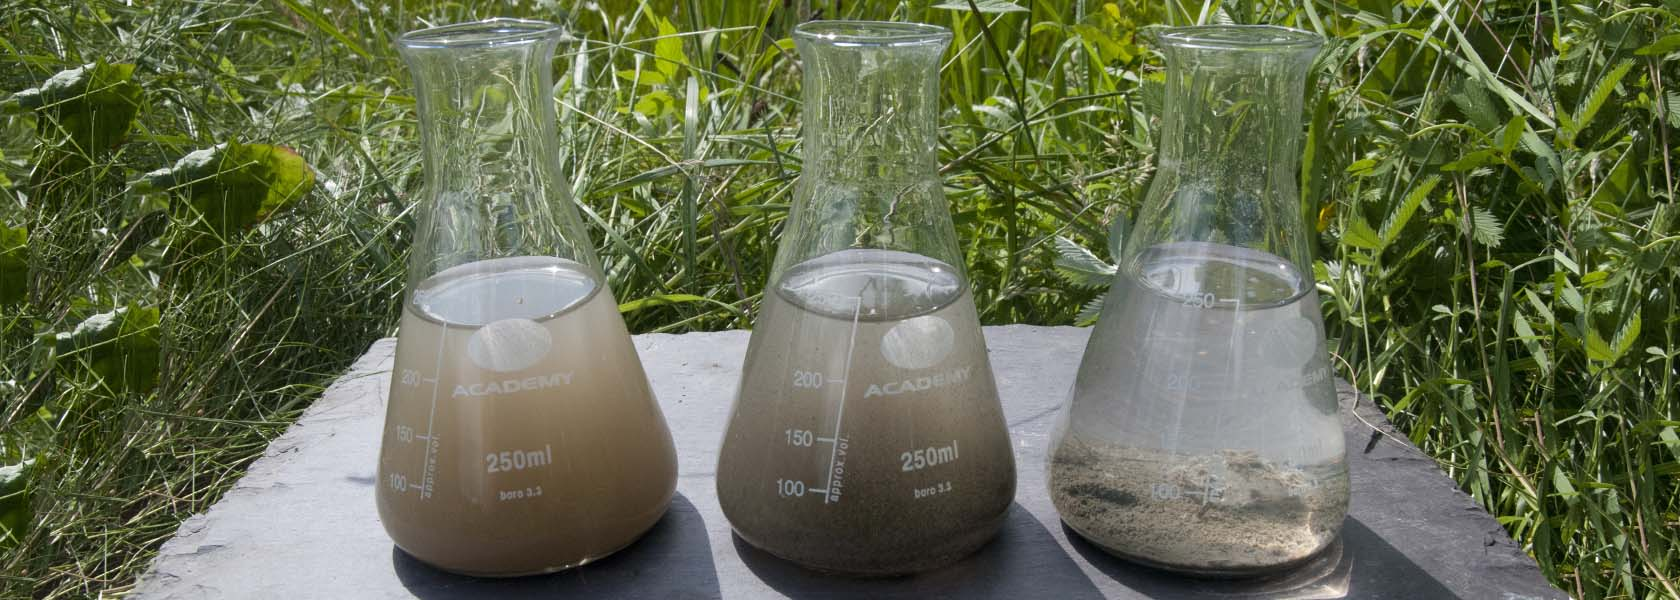 innovative water quality and sediment product development